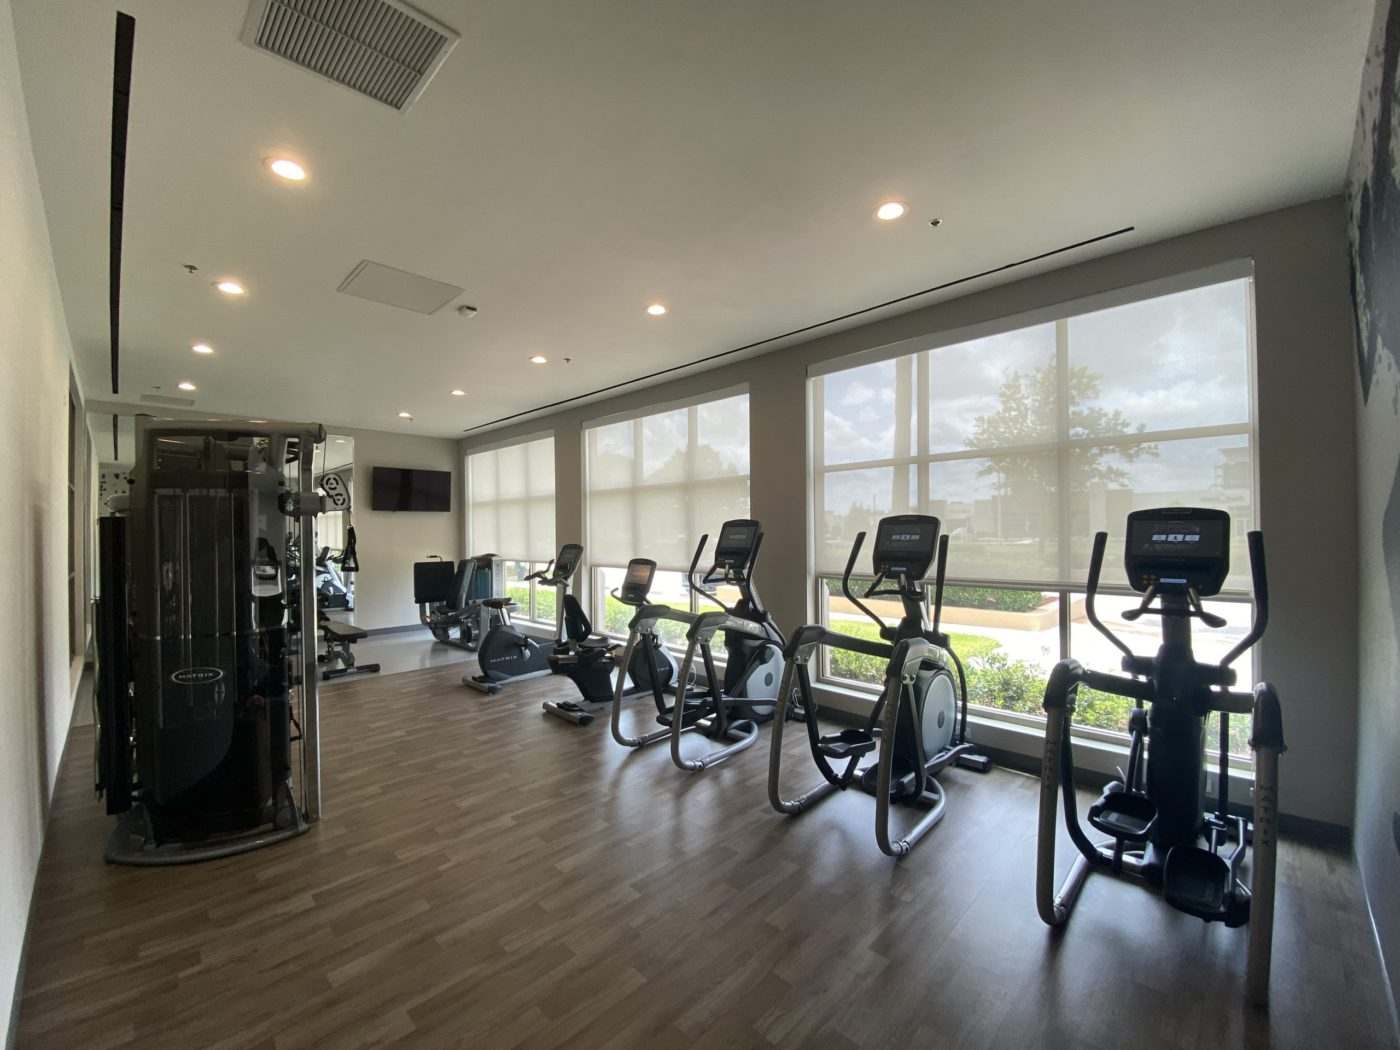 Sheraton Hotel Fitness Center Expansion